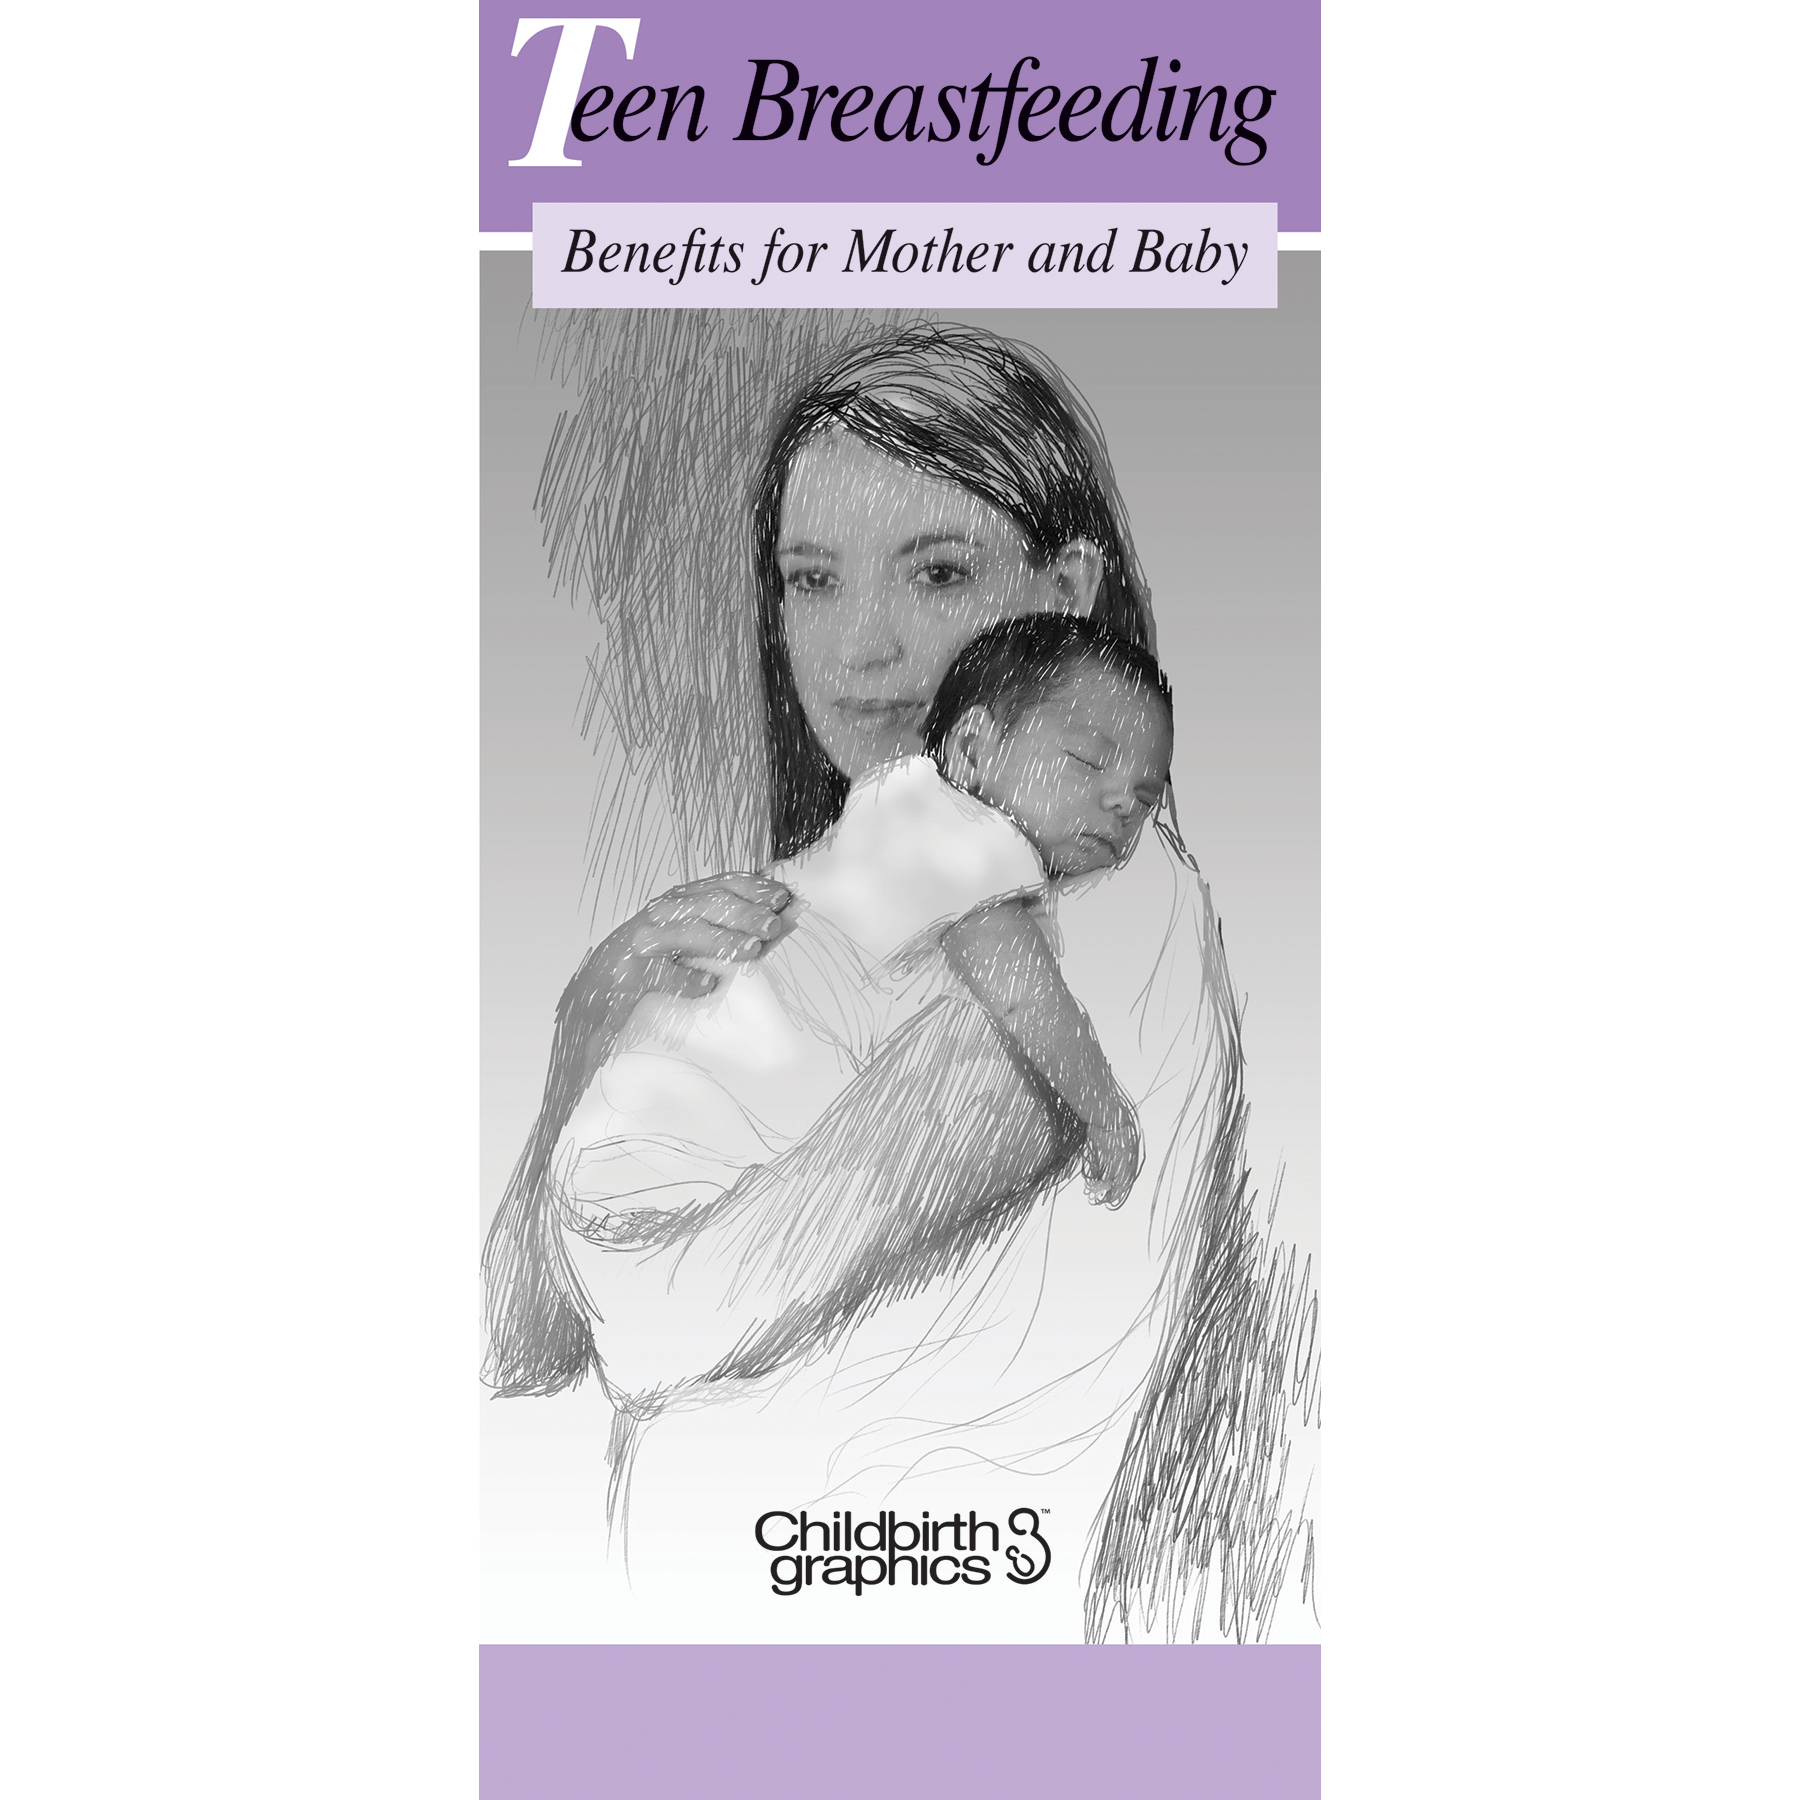 Teen Breastfeeding two-color illustrated pamphlet cover, Childbirth Graphics, 38662